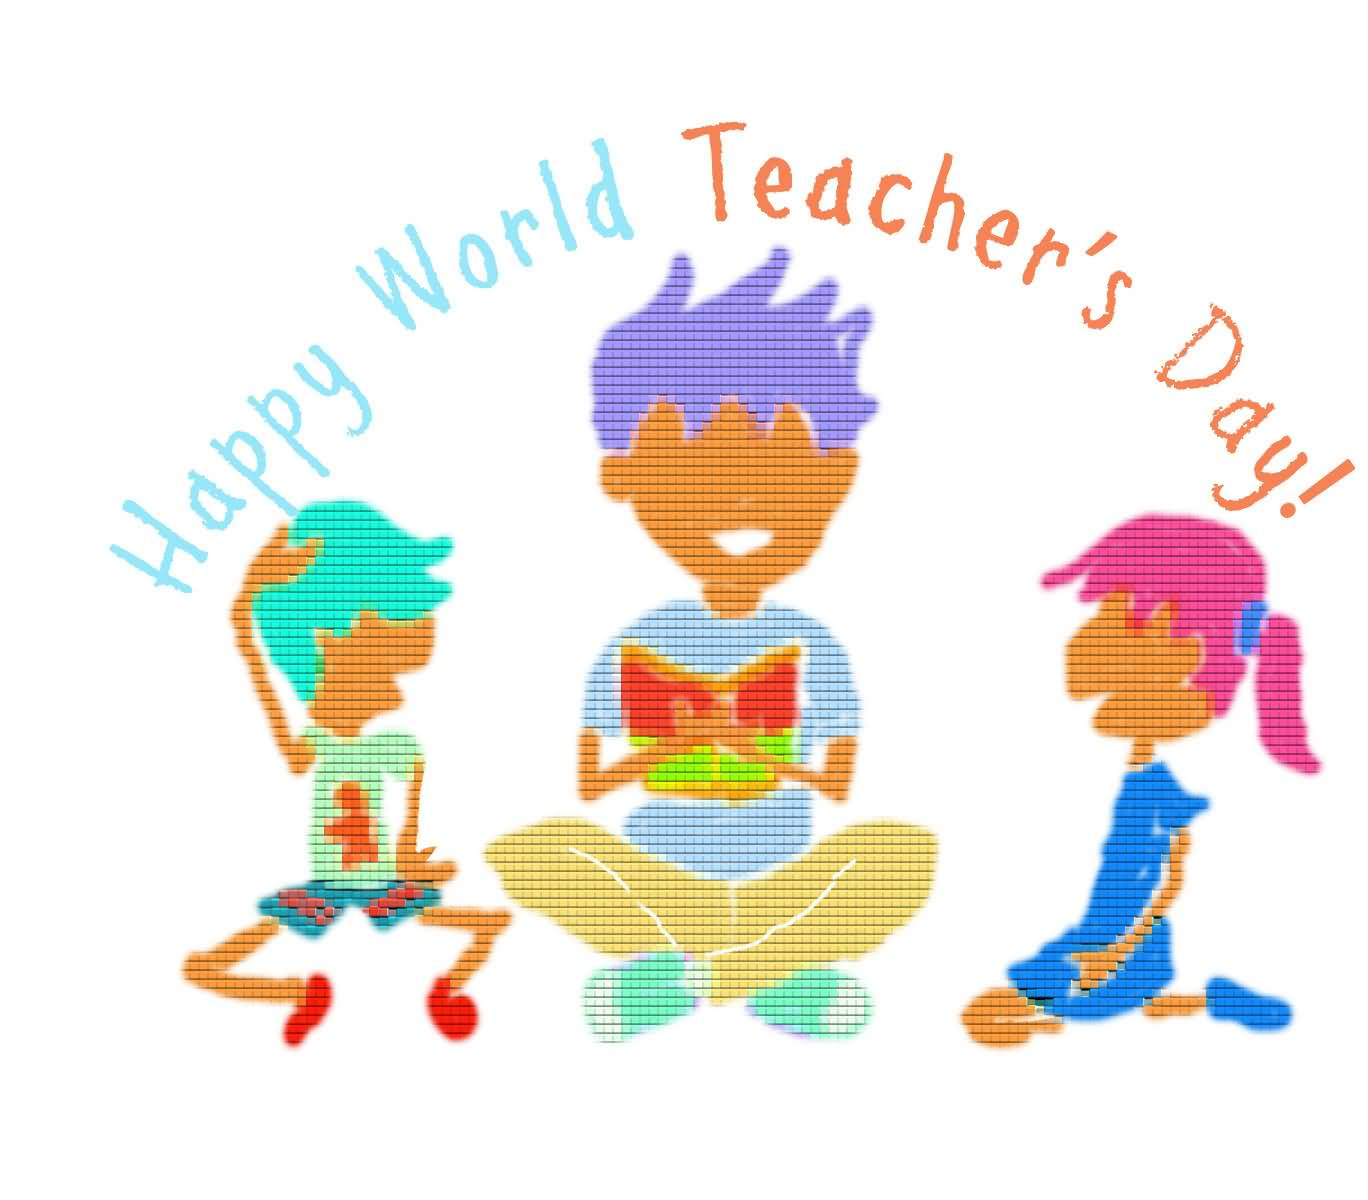 World clipart happy world. Teachers day wishes